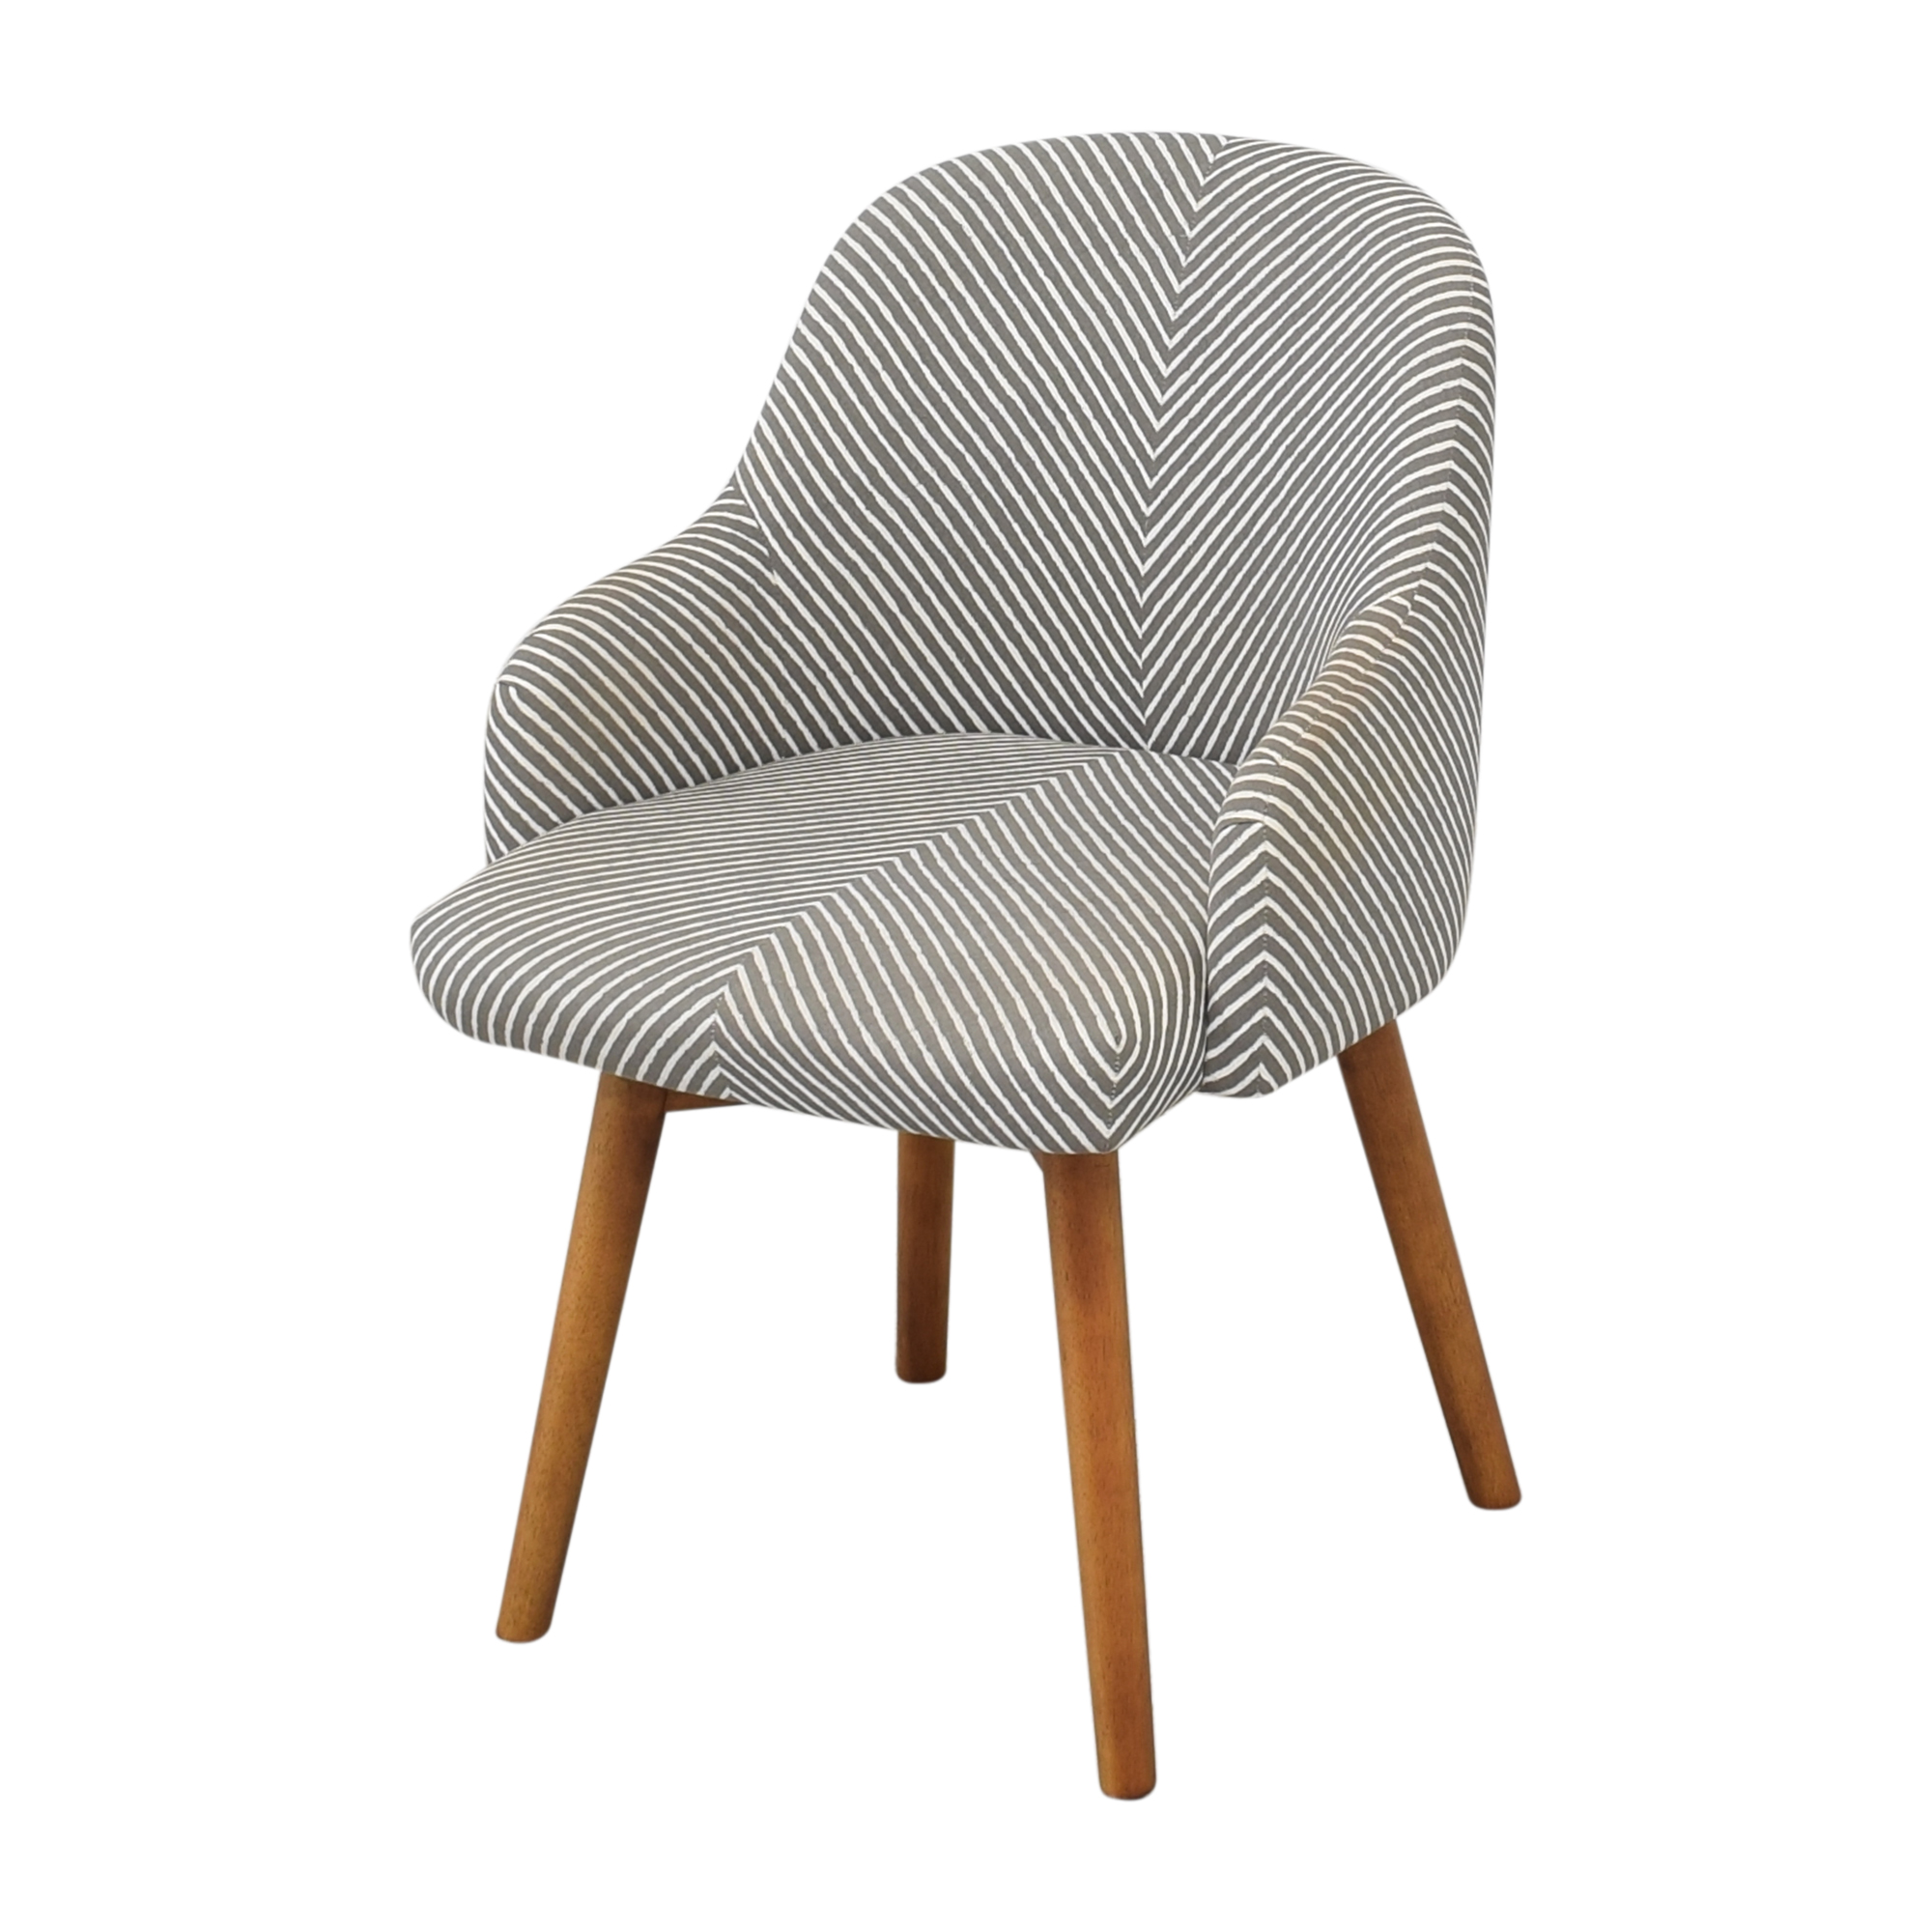 West Elm West Elm Saddle Office Chair grey & white